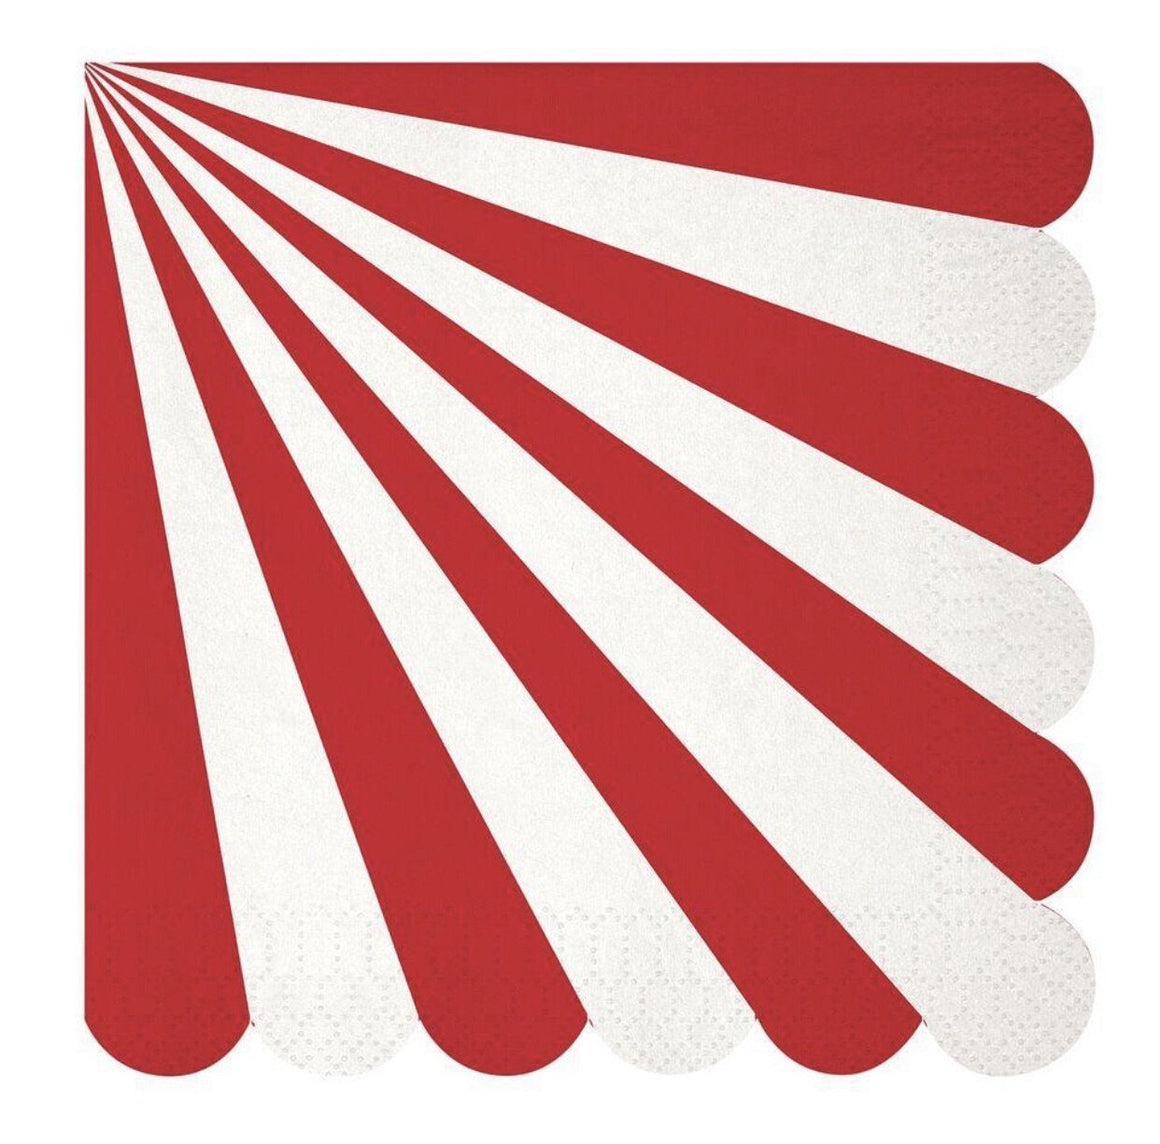 NAPKINS - LARGE PINWHEEL RED STRIPE